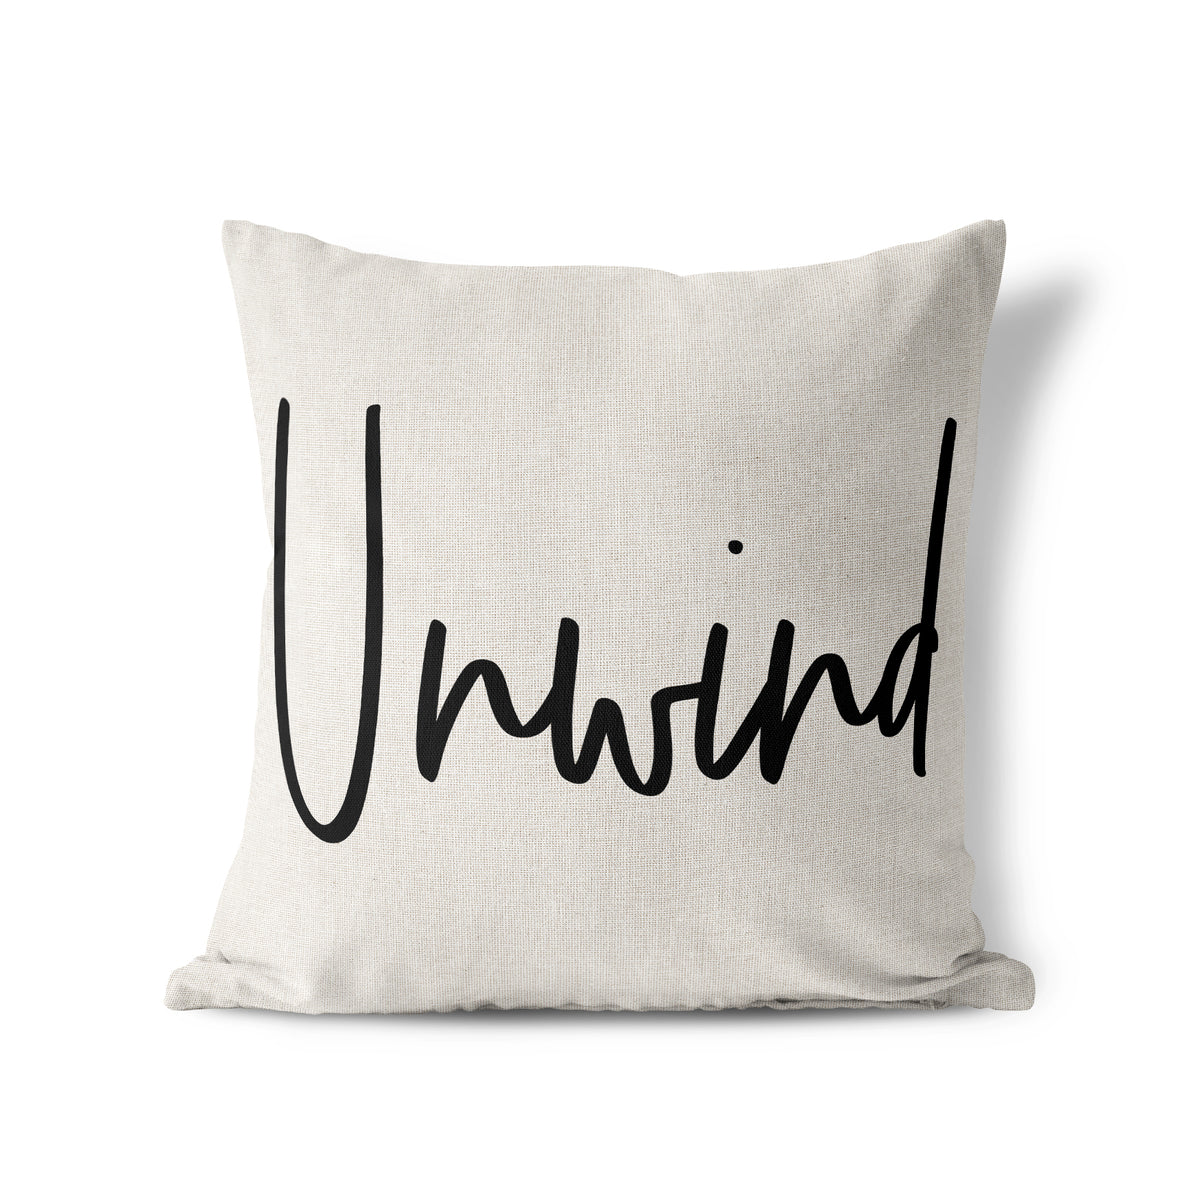 Unwind - Pillow Cover